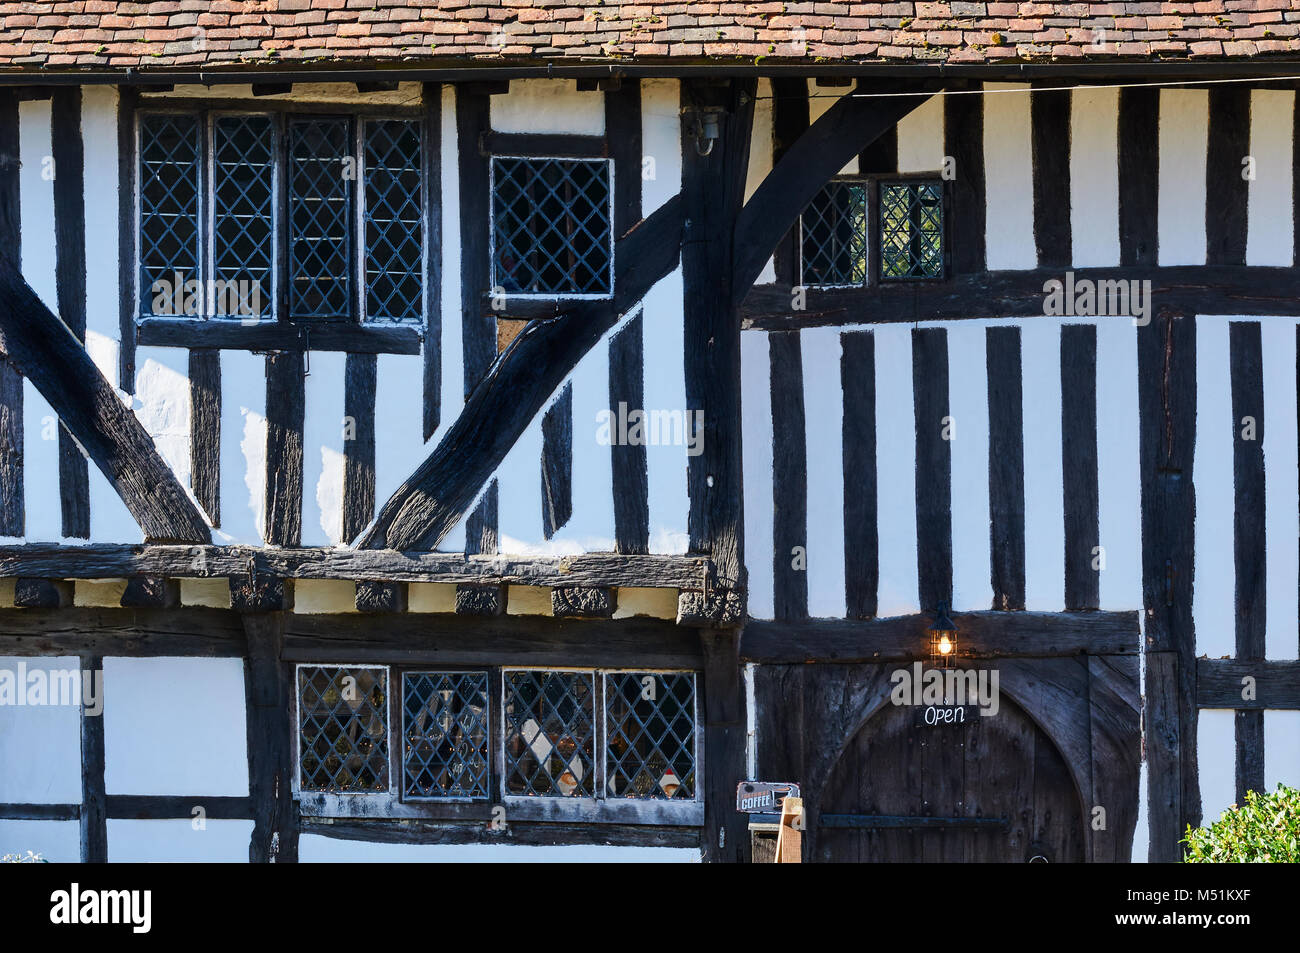 The historic Pilgrim's Rest medieval hall house frontage at Battle, East Sussex, UK - Stock Image